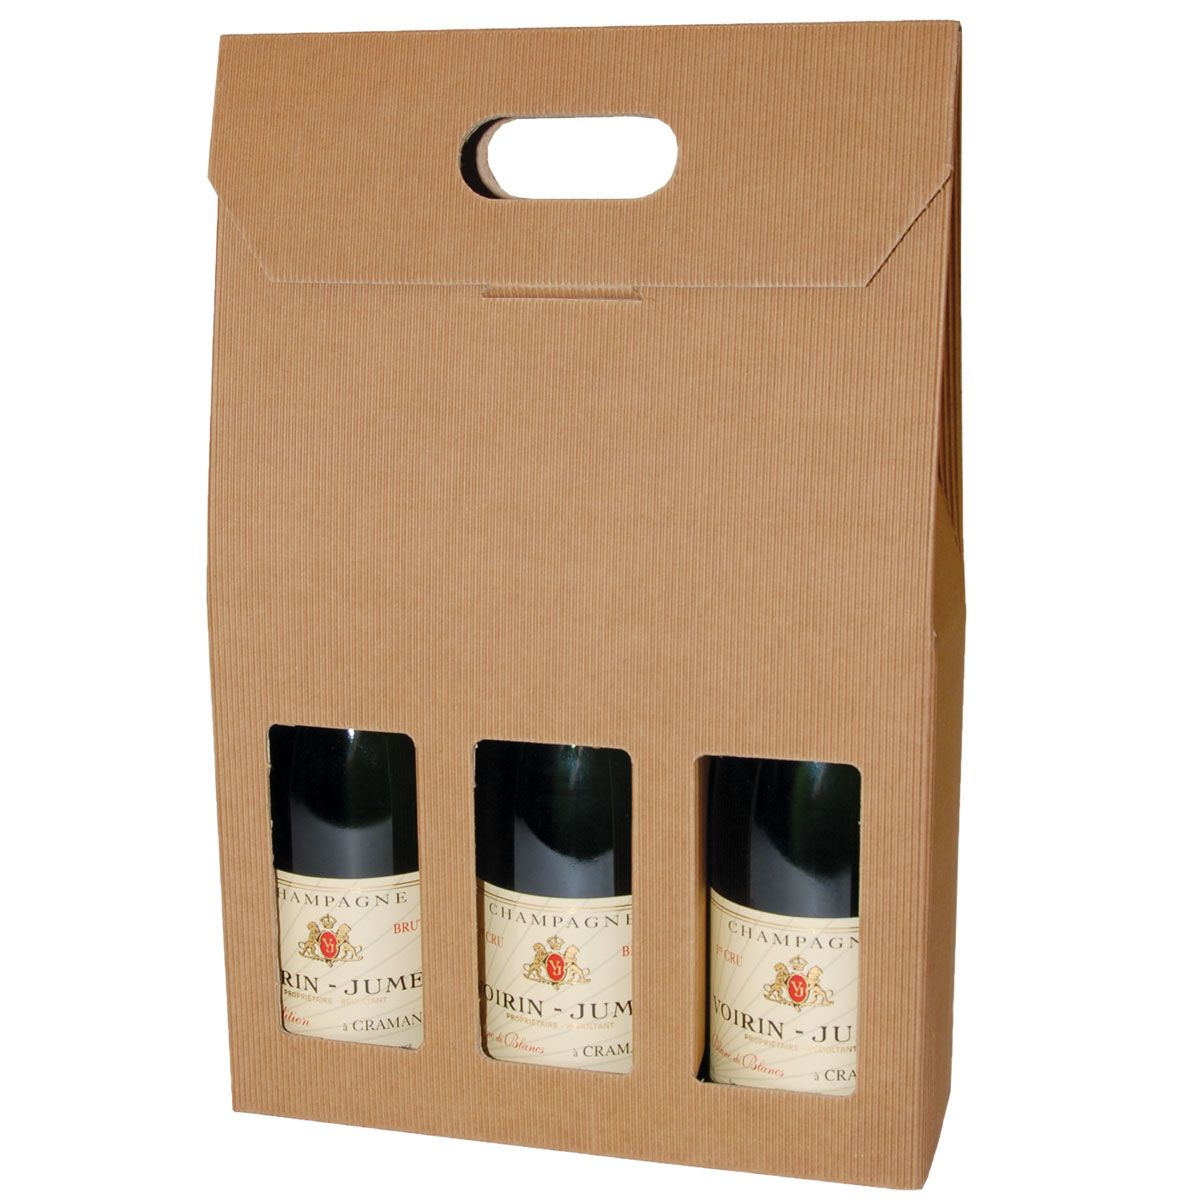 3 bottle gift carton in natural fluted board with windows ...